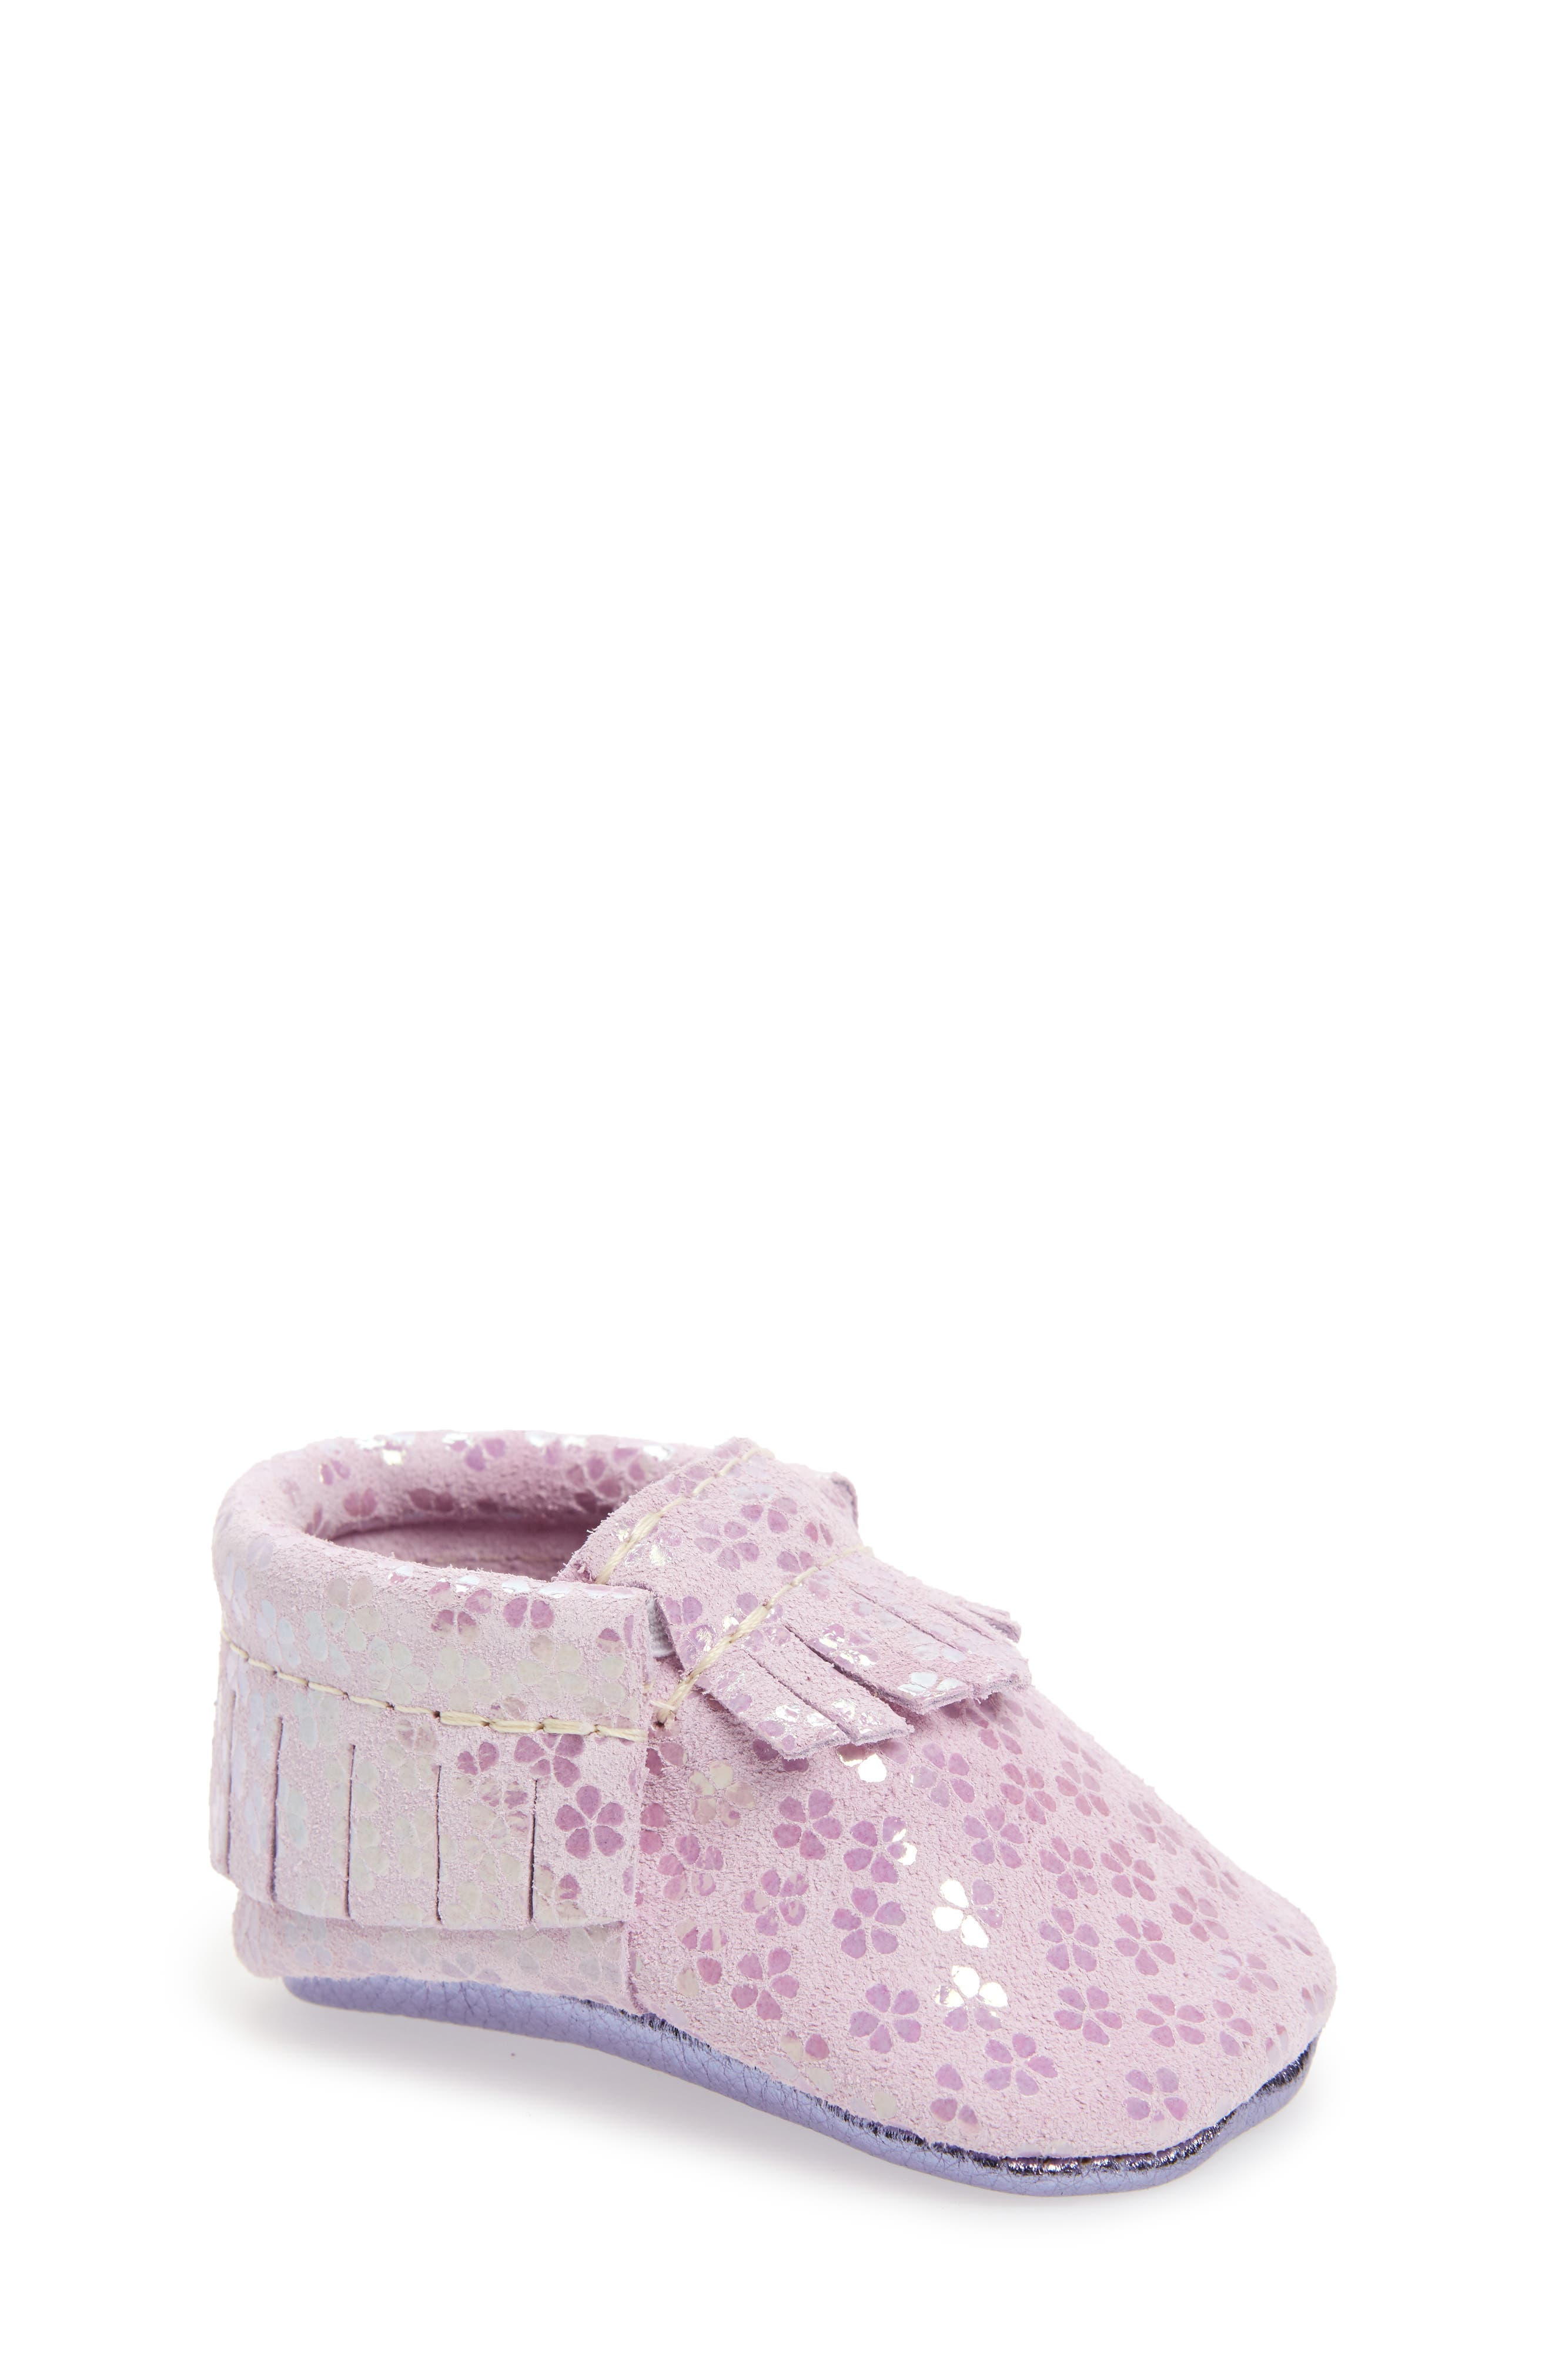 Lilac Blossom Moccasin,                         Main,                         color, 508